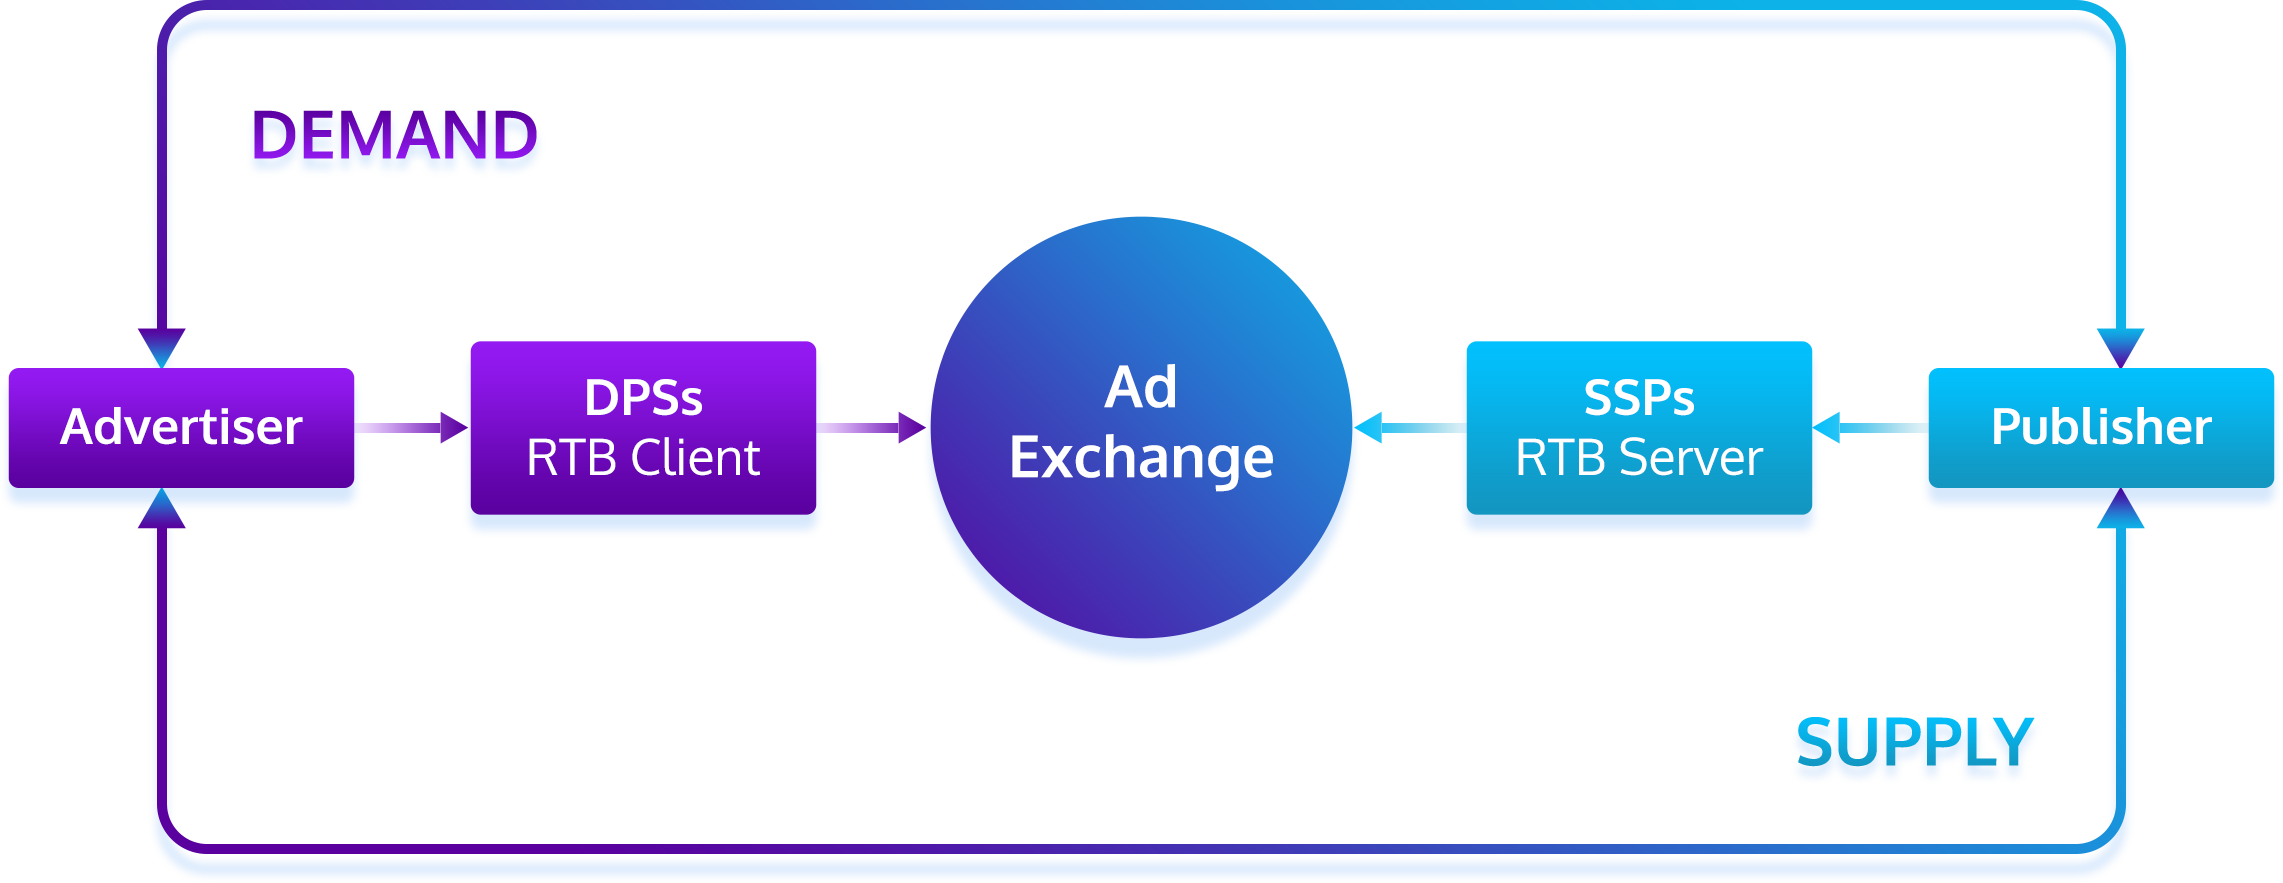 Real-time bidding or RTB auction process